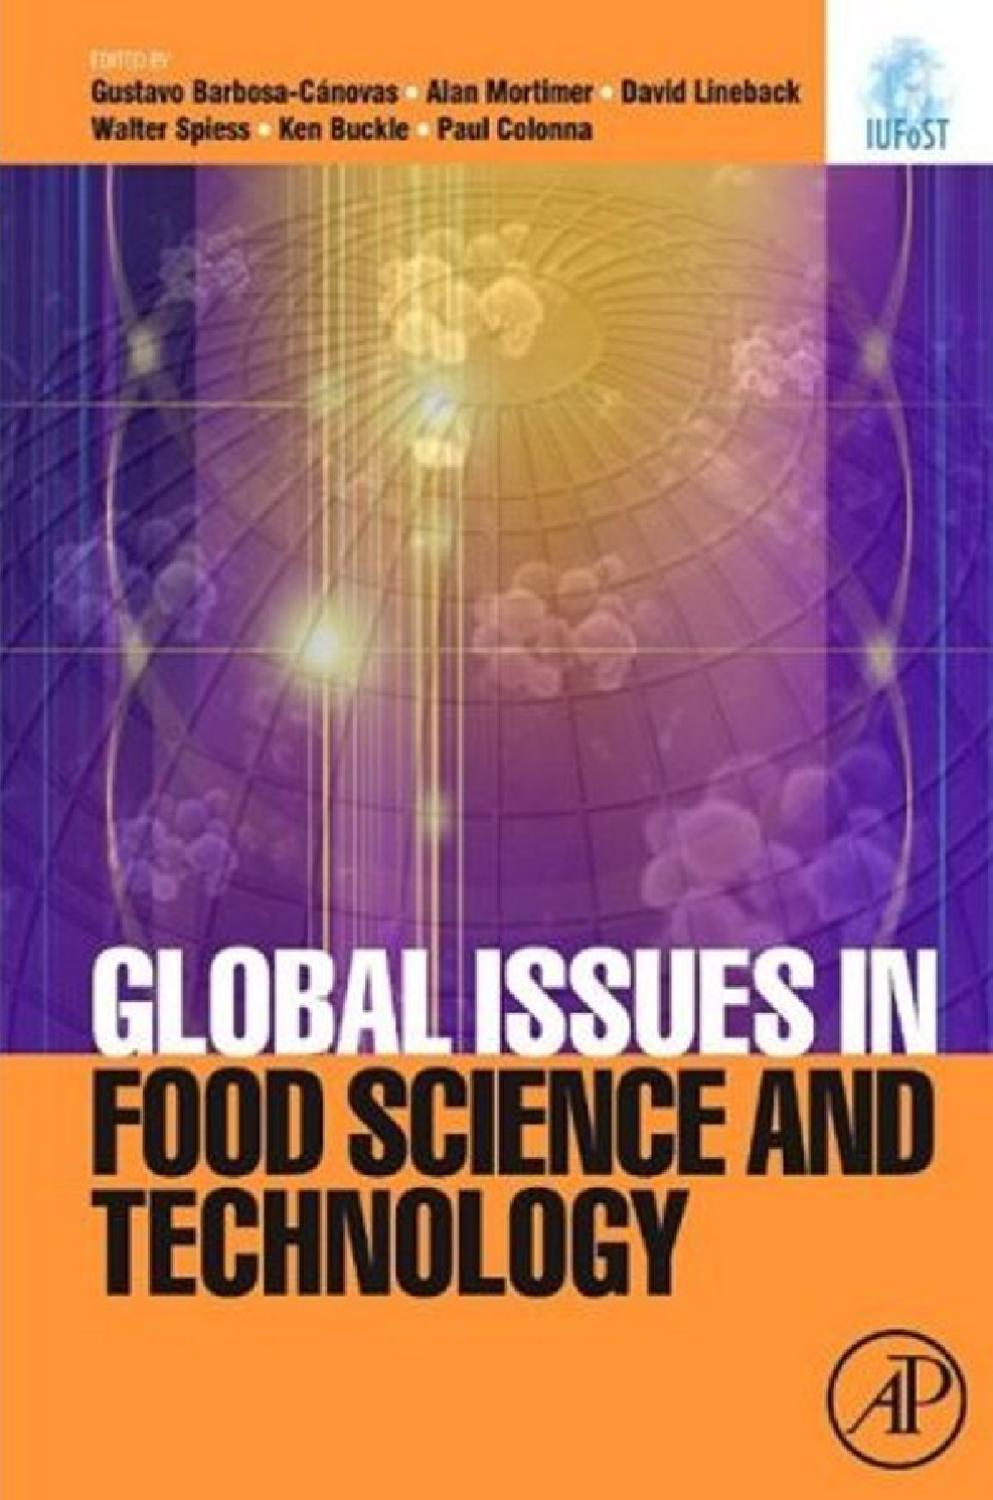 Food Science And Technology Global Issues By Lucian Cuibus